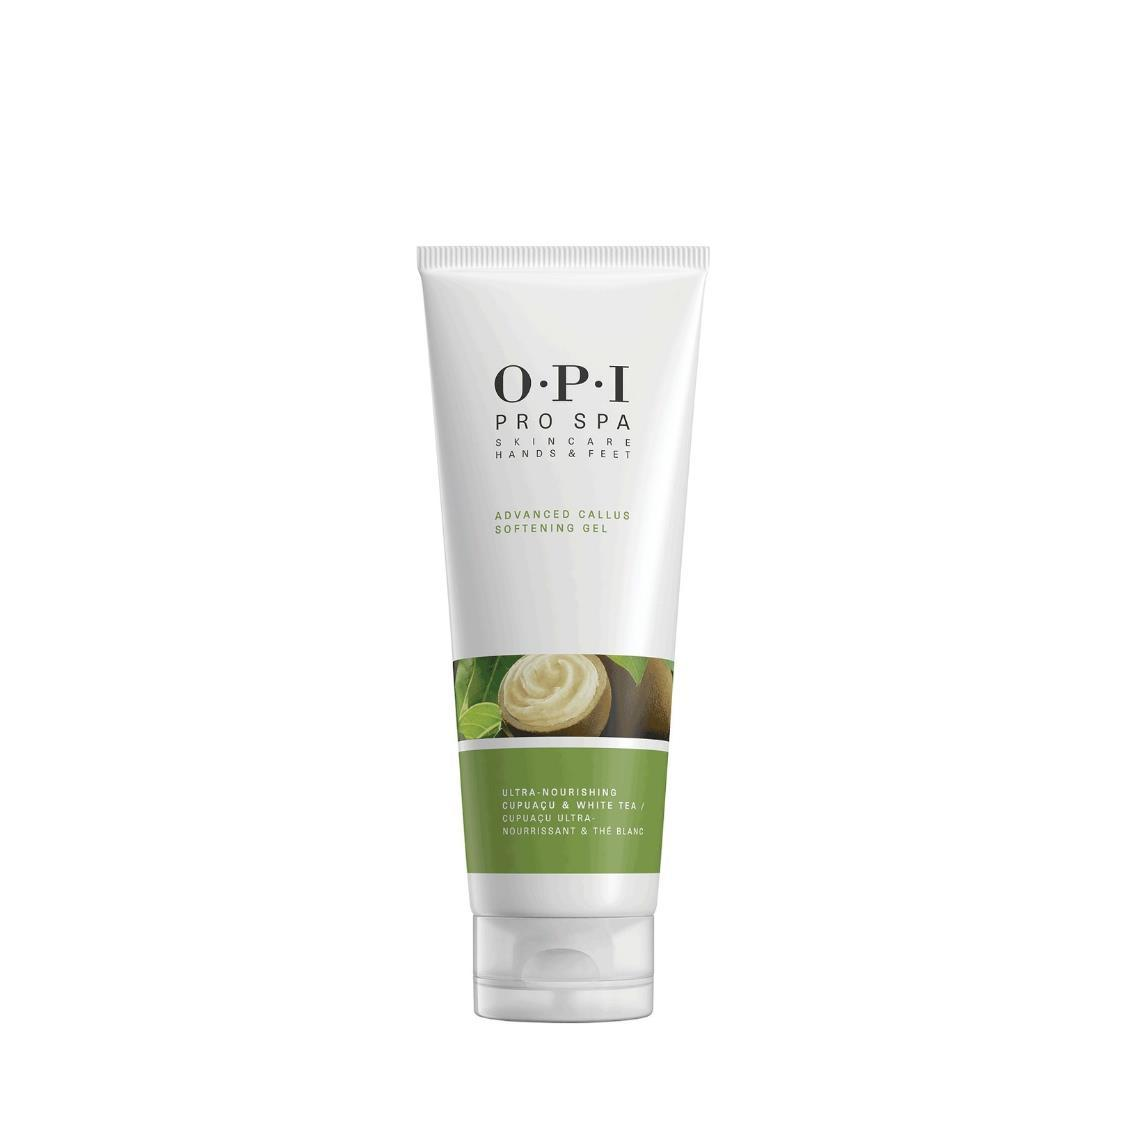 Opi Prospa Advanced Callus Soften Gel 236ml